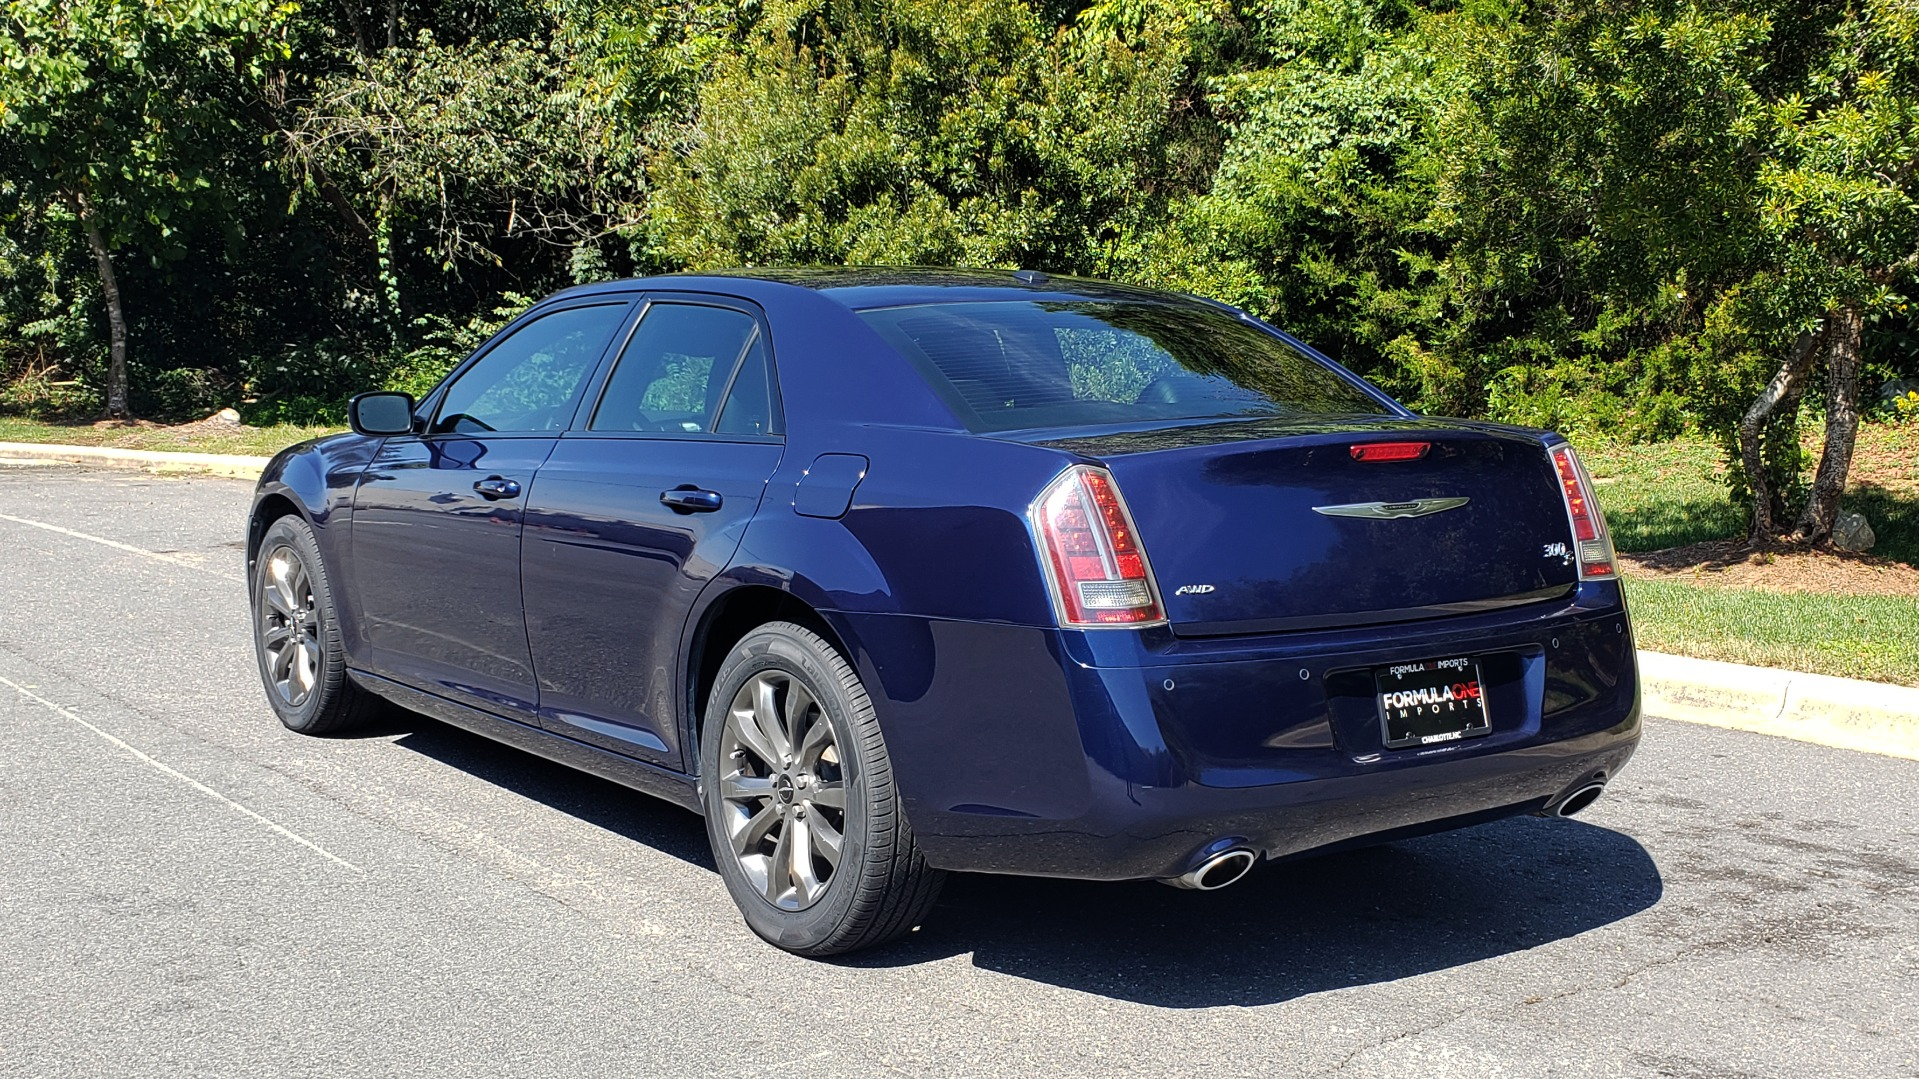 Used 2014 Chrysler 300 S AWD / SAFETY TEC / BLIND SPOT / LIGHT GRP / LUXURY GRP for sale Sold at Formula Imports in Charlotte NC 28227 5